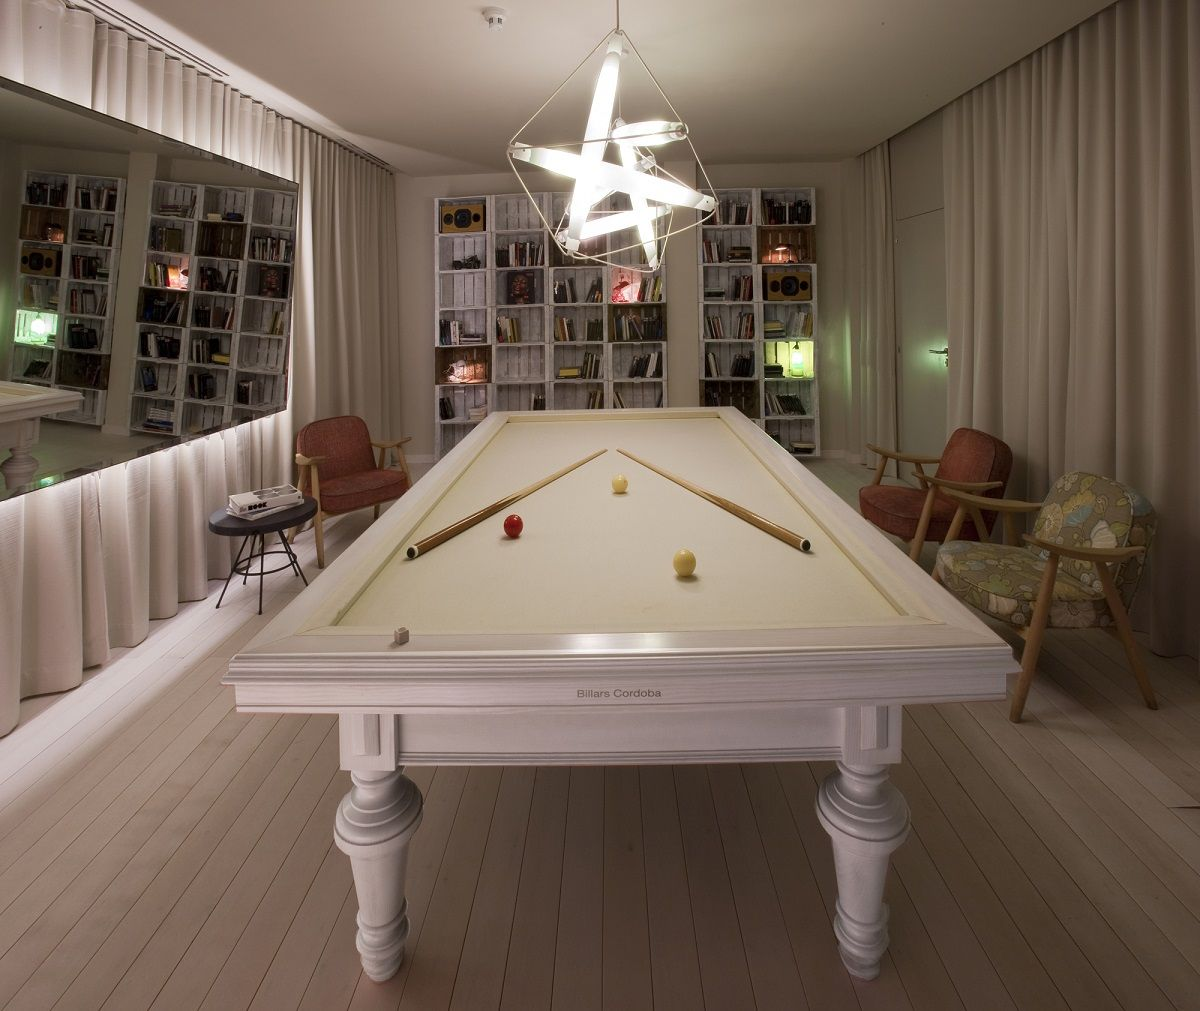 Pretty, But I Would Prefer Turquoise Felt Or Pink! Love This Pool Table. I  Found It As I Was Wondering Whether They Made A More Feminine Type Pool  Table And ...